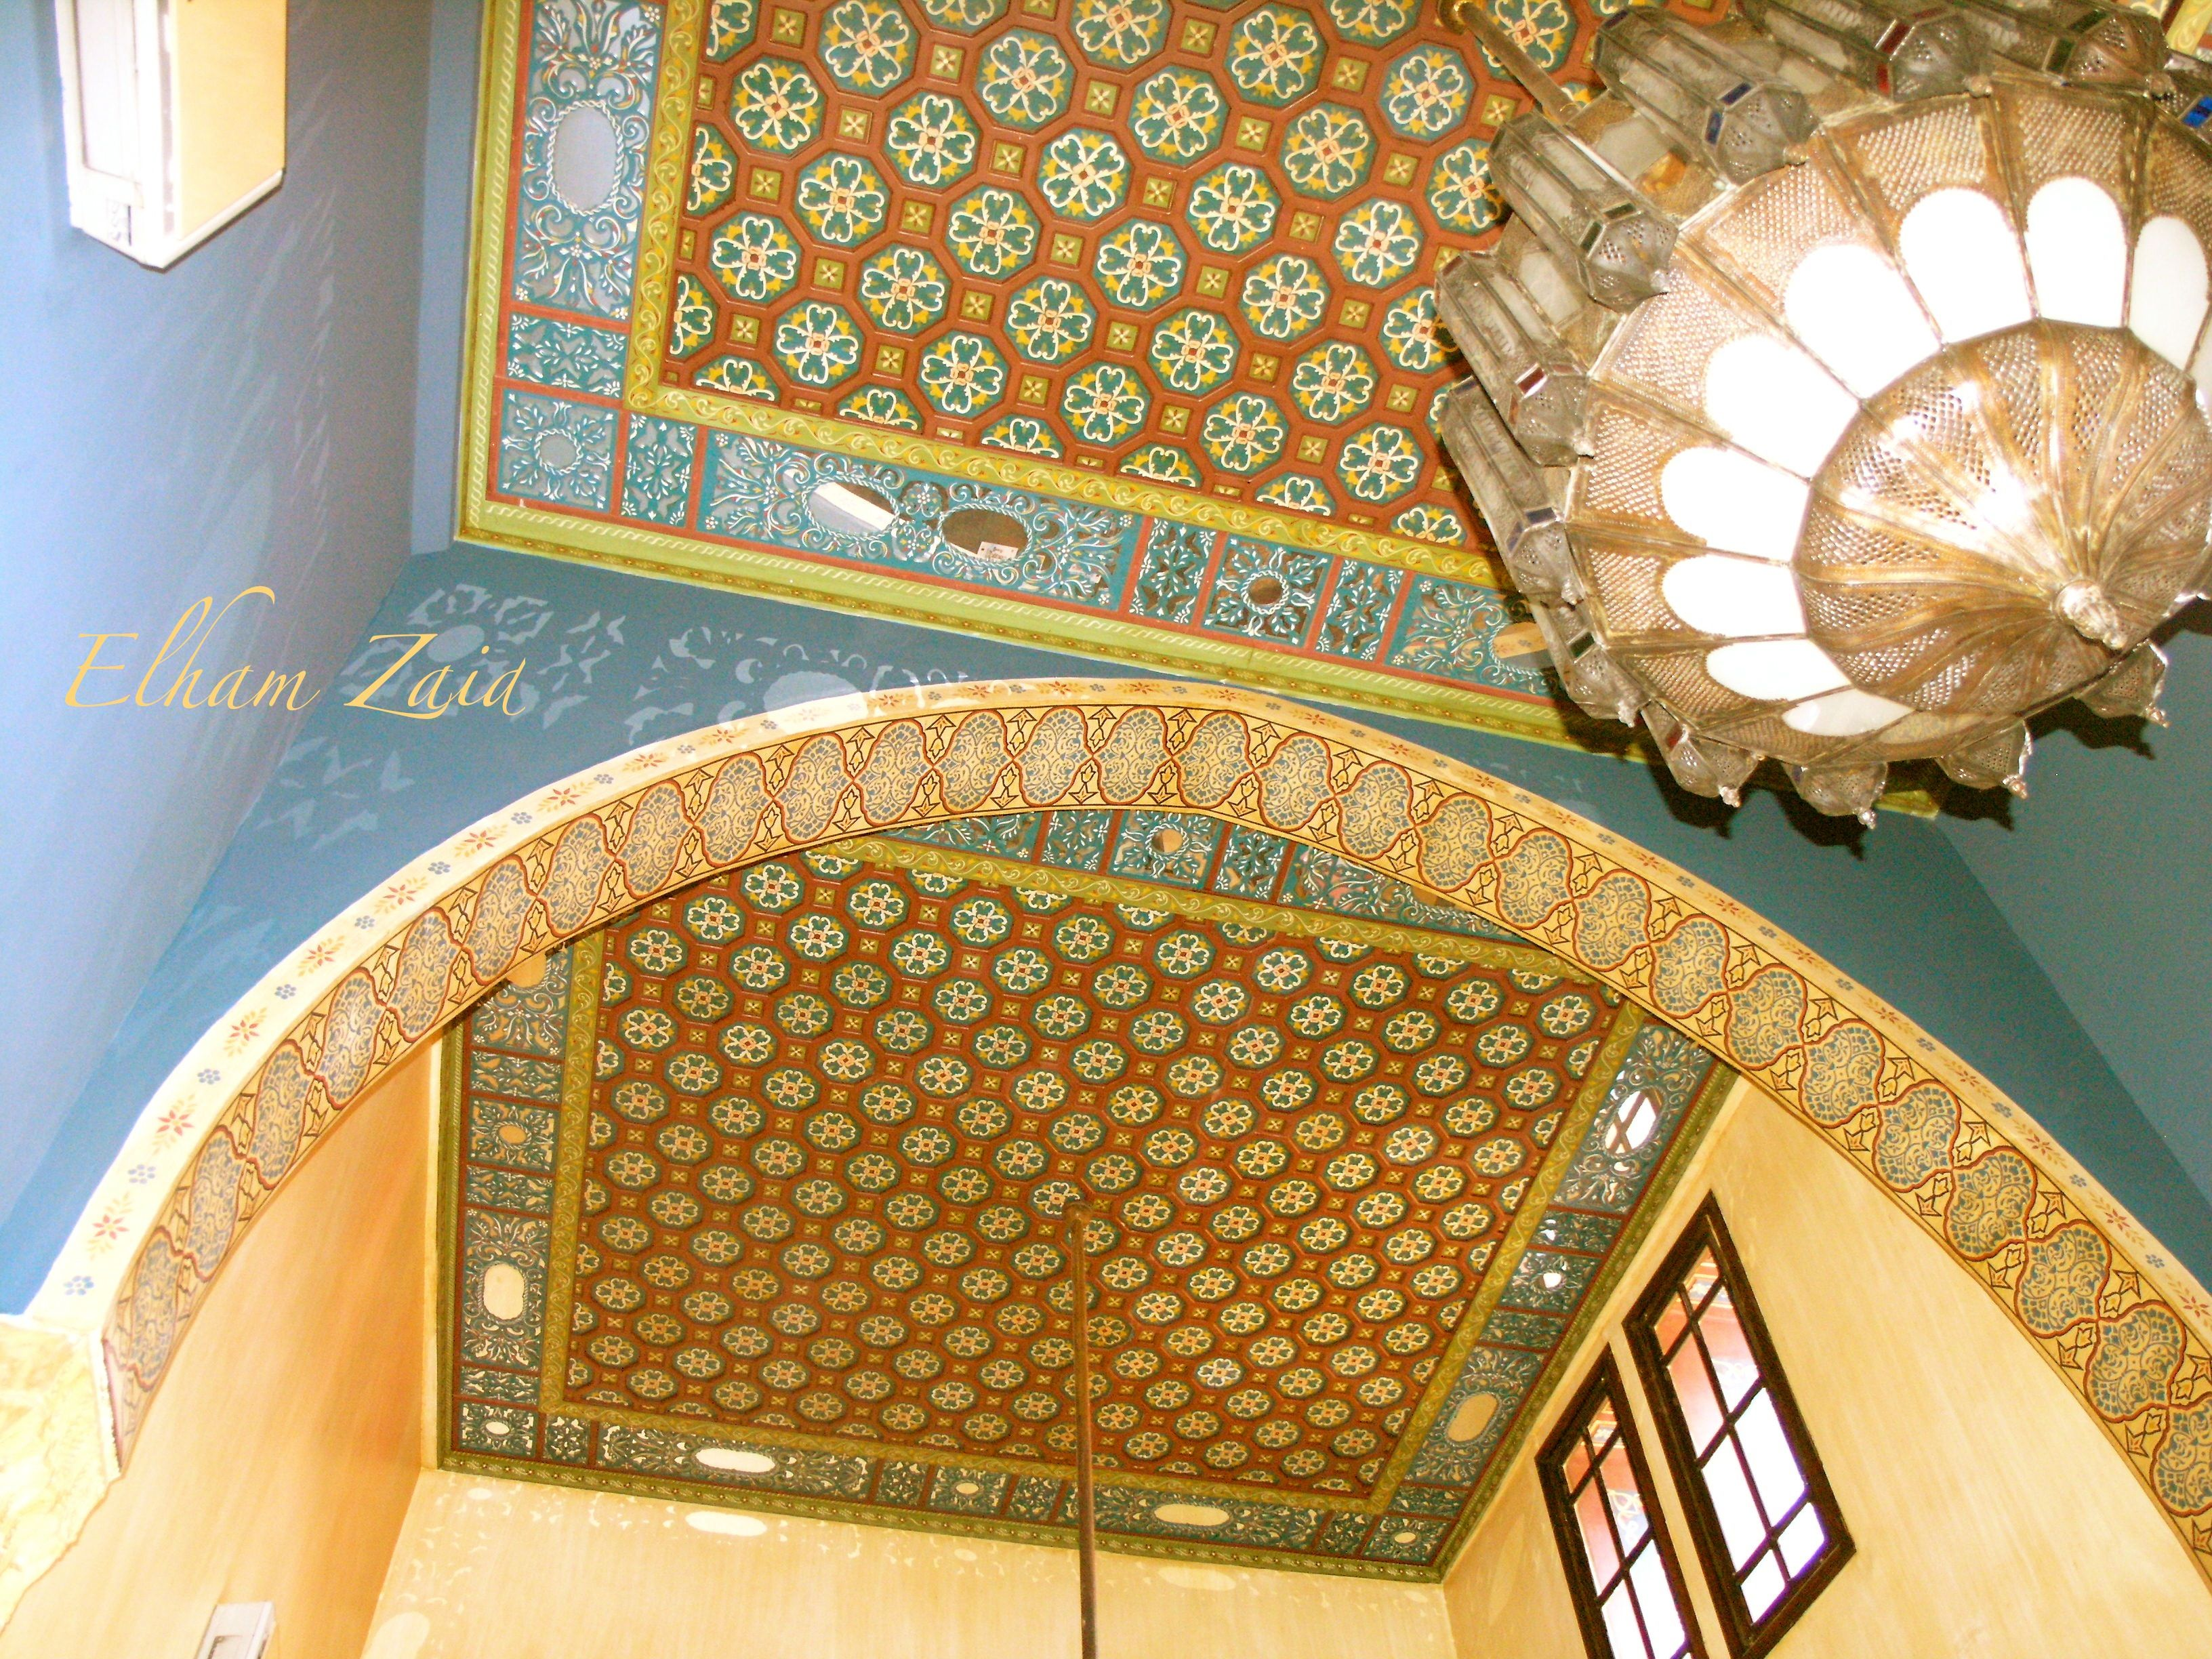 Syria, Damascus, I took these pictures my self when I was there 3 years ago. This is in old Damascus, an old traditional house converted to a hotel called Talizman. Elham Zaid.